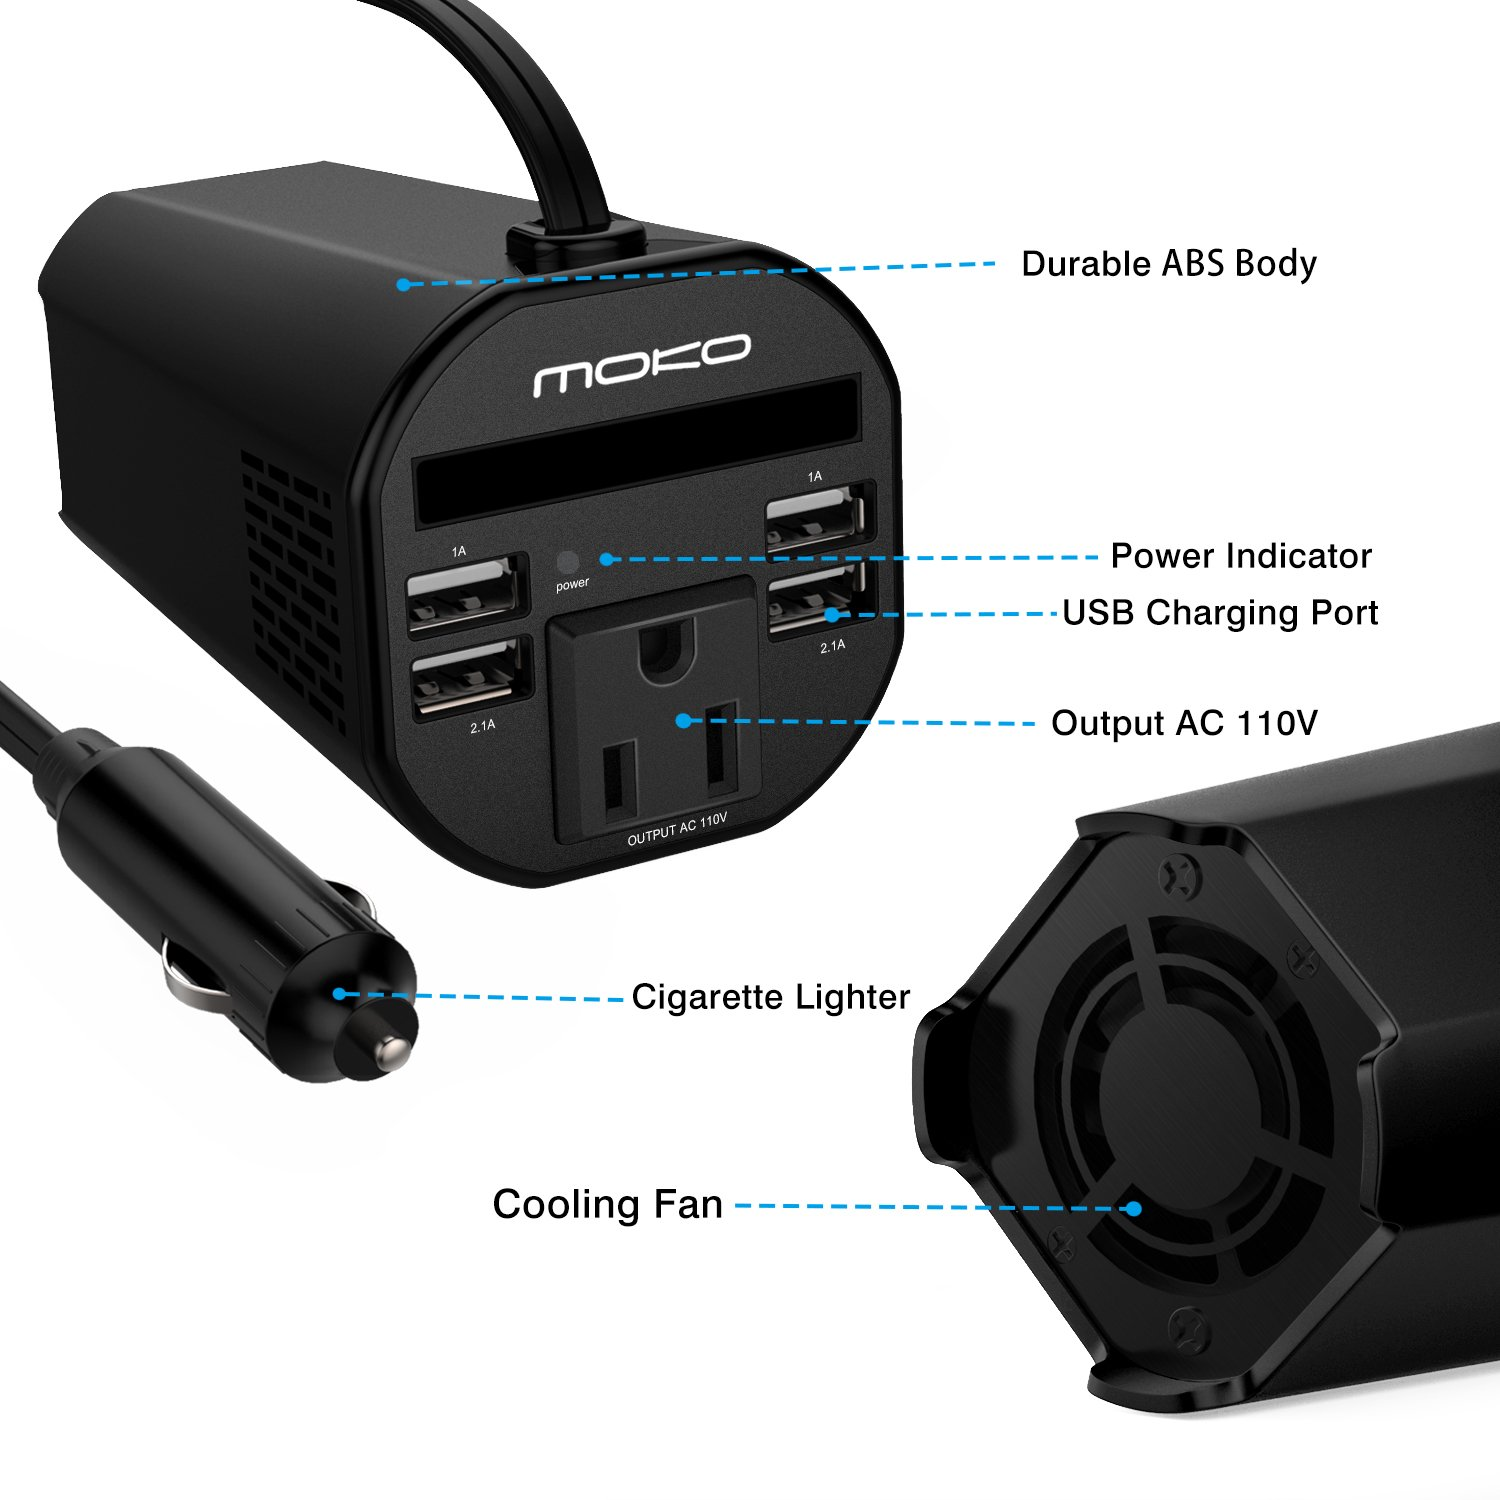 MoKo 150W Car Power Inverter, DC 12V to 110V AC Outlet Cup Holder Converter Adapter, with 4 USB Port Charger, for iPhone X/8/8 Plus, MacBook, iPad Pro, Chromebook, Galaxy S8 and etc. (Black) by MoKo (Image #3)